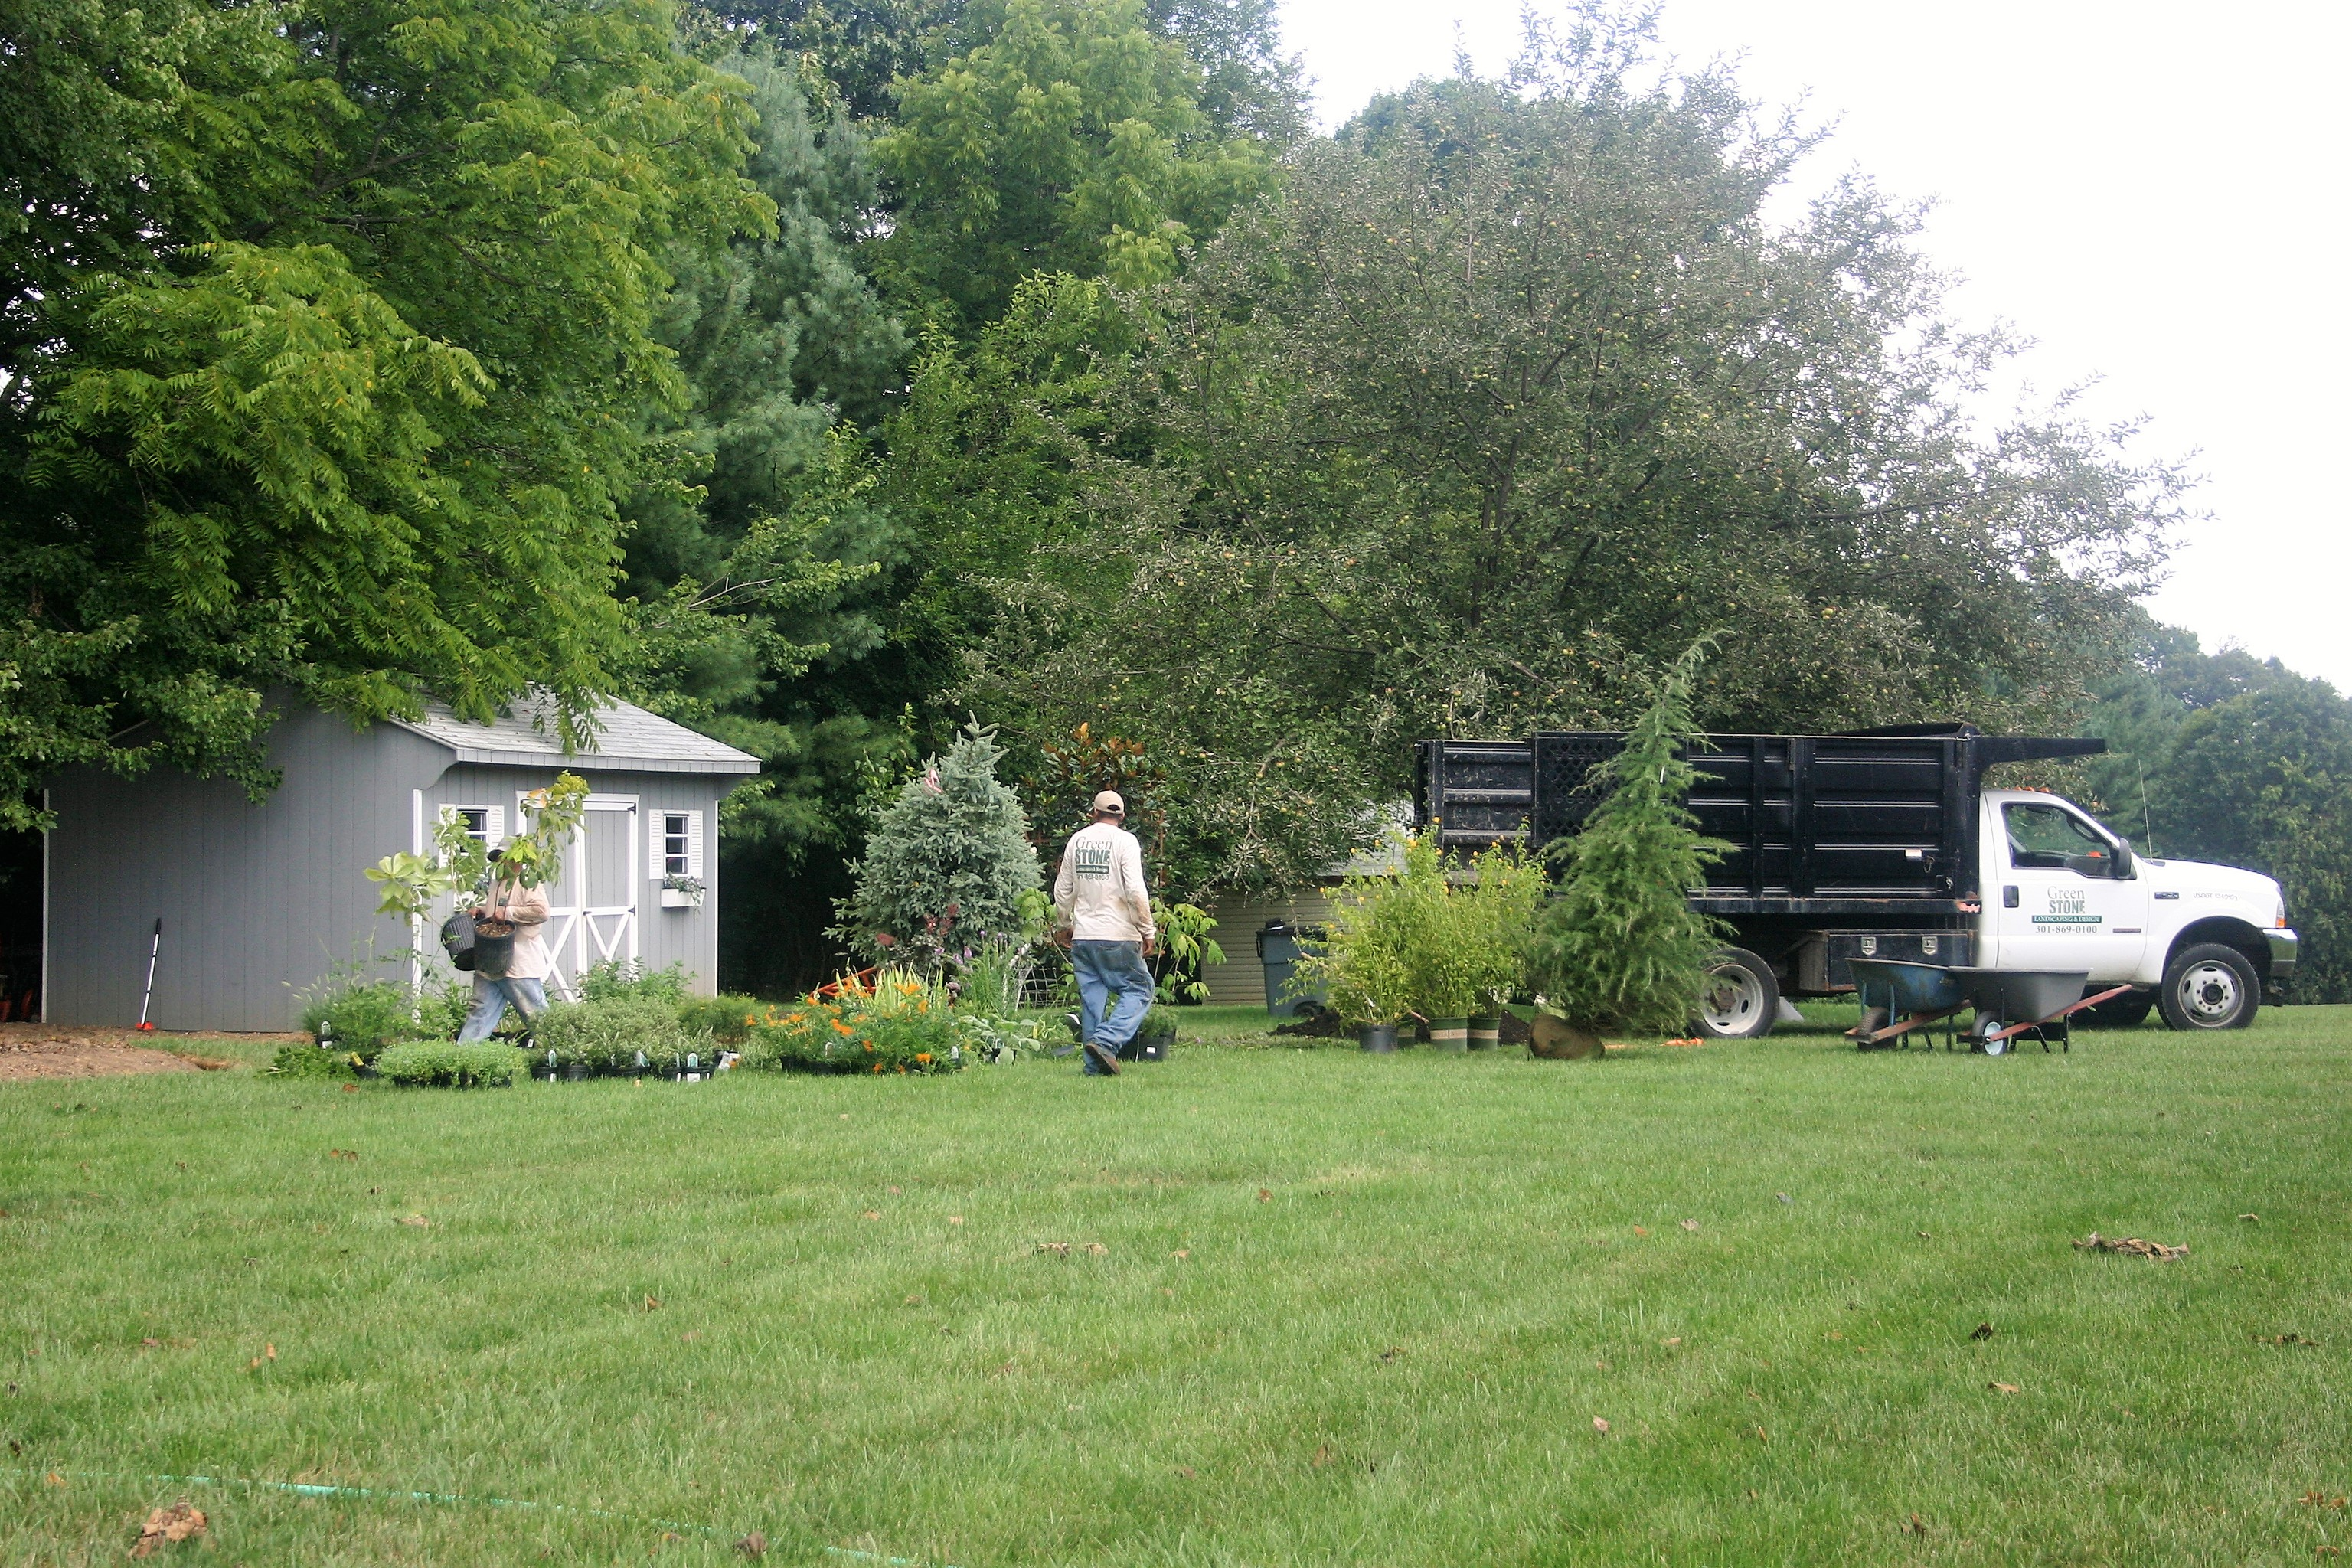 Photo of landscaping work in Laytownville, MD, USA